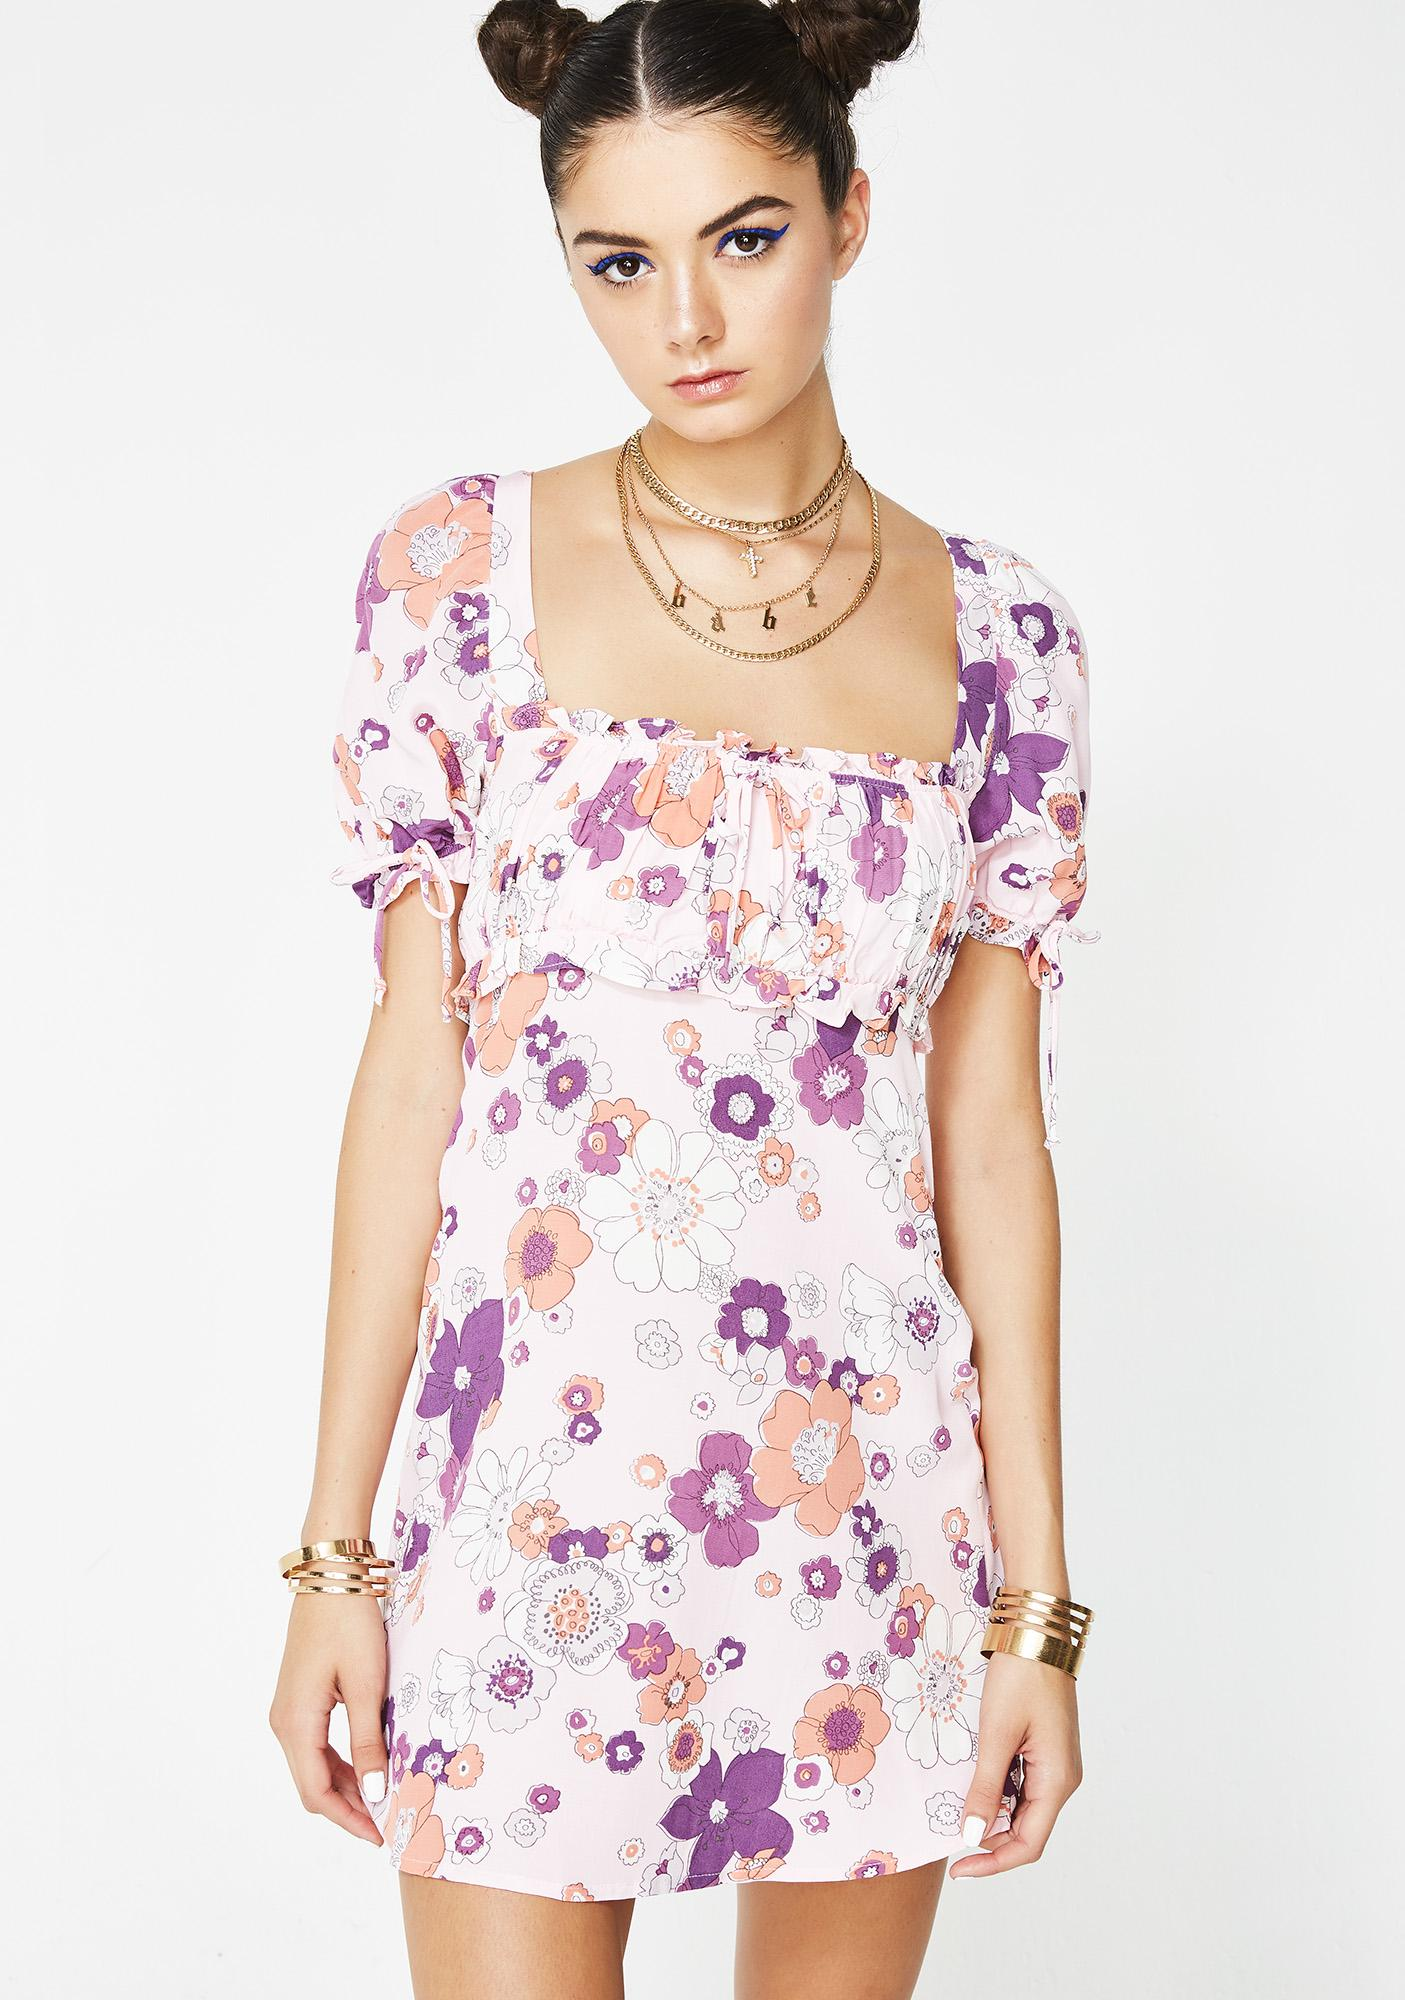 Magnolia Mini Dress by For Love Lemons